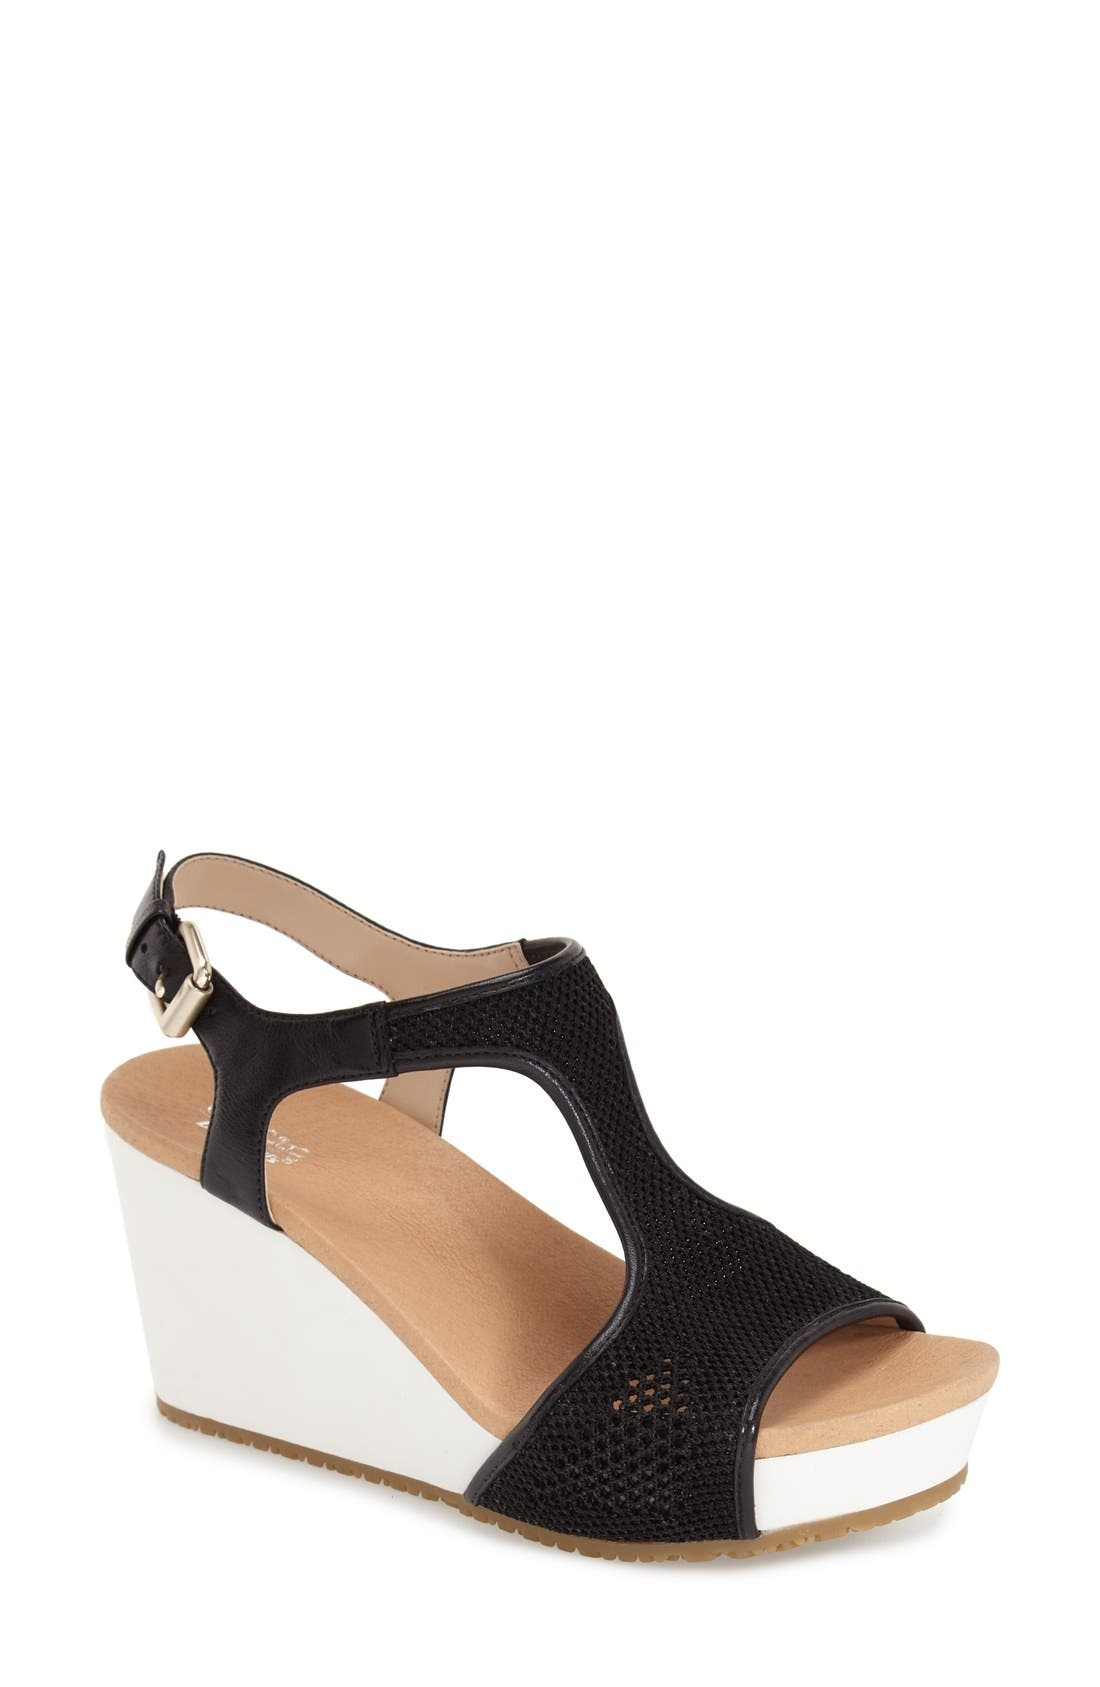 Dr. Scholl's 'Original Collection Wiley' Wedge Sandal (Women)